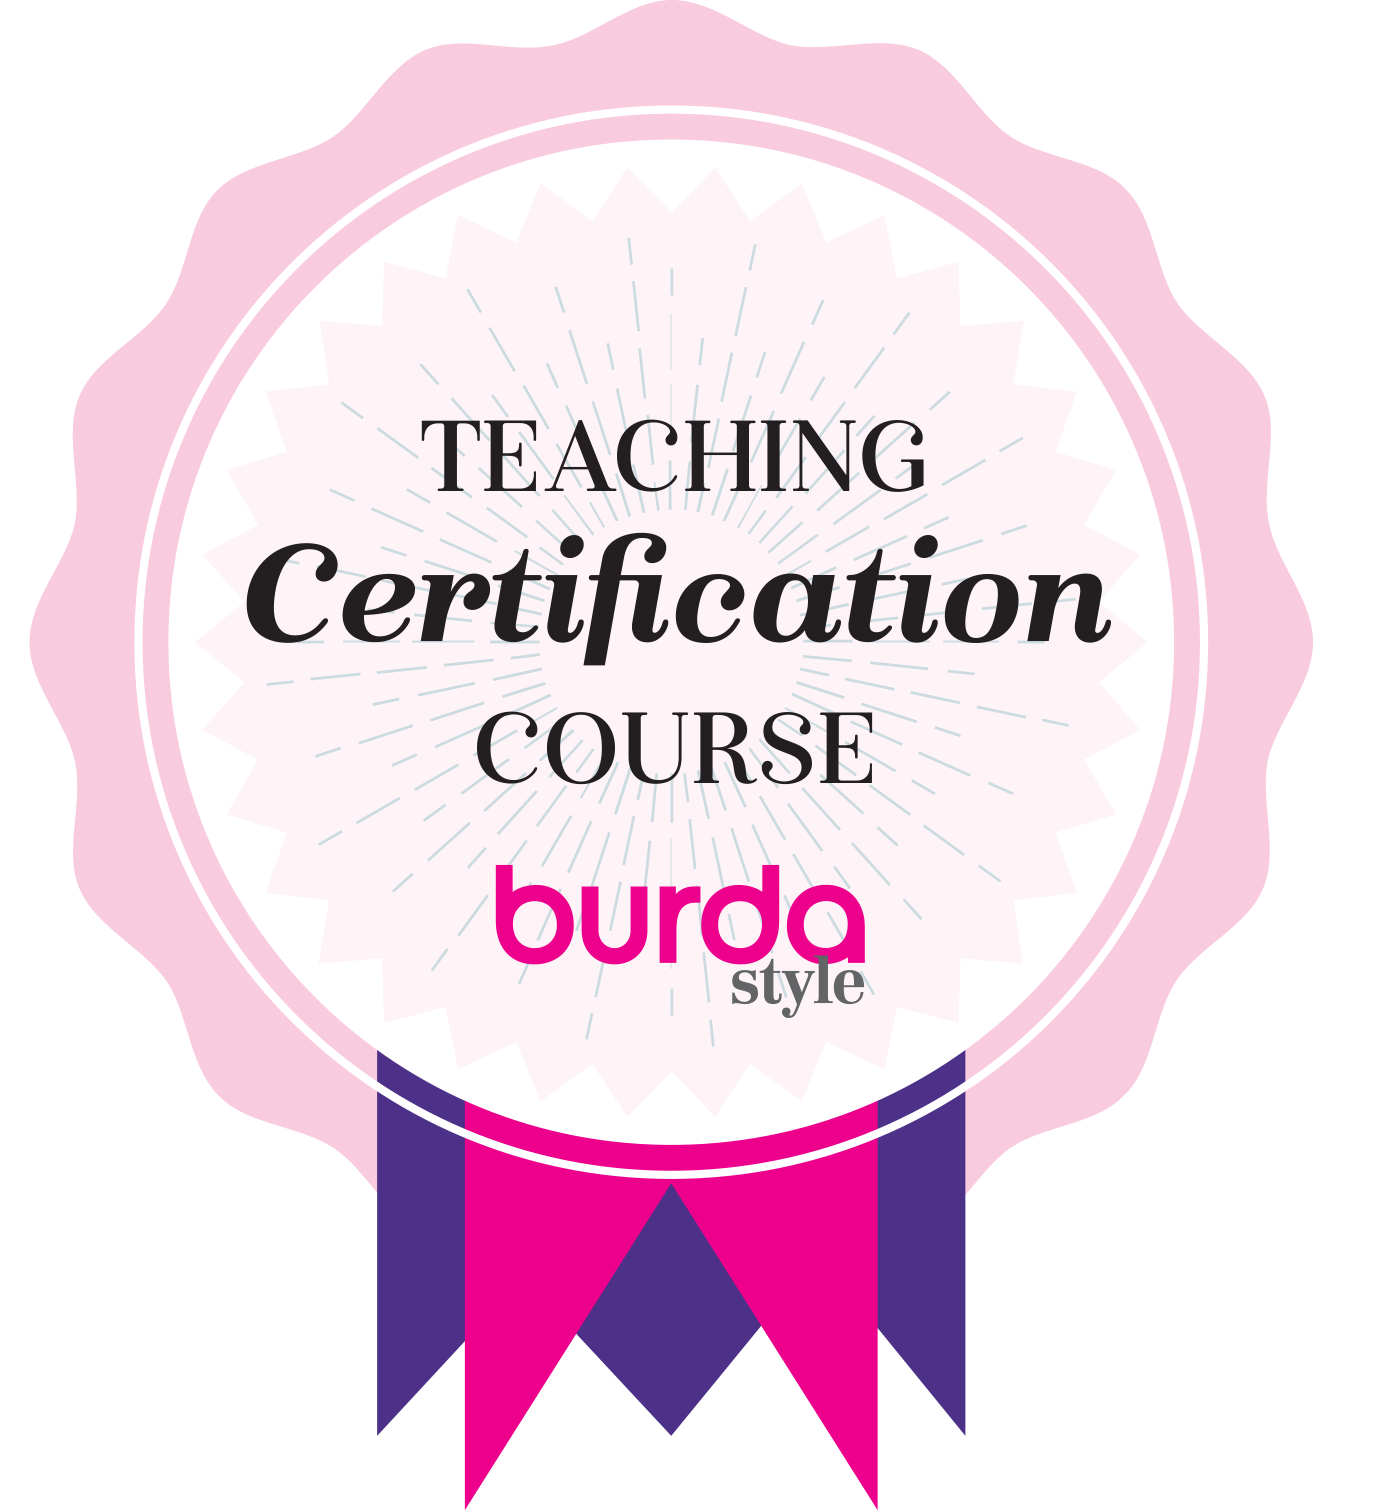 burda_teaching_stamp pink